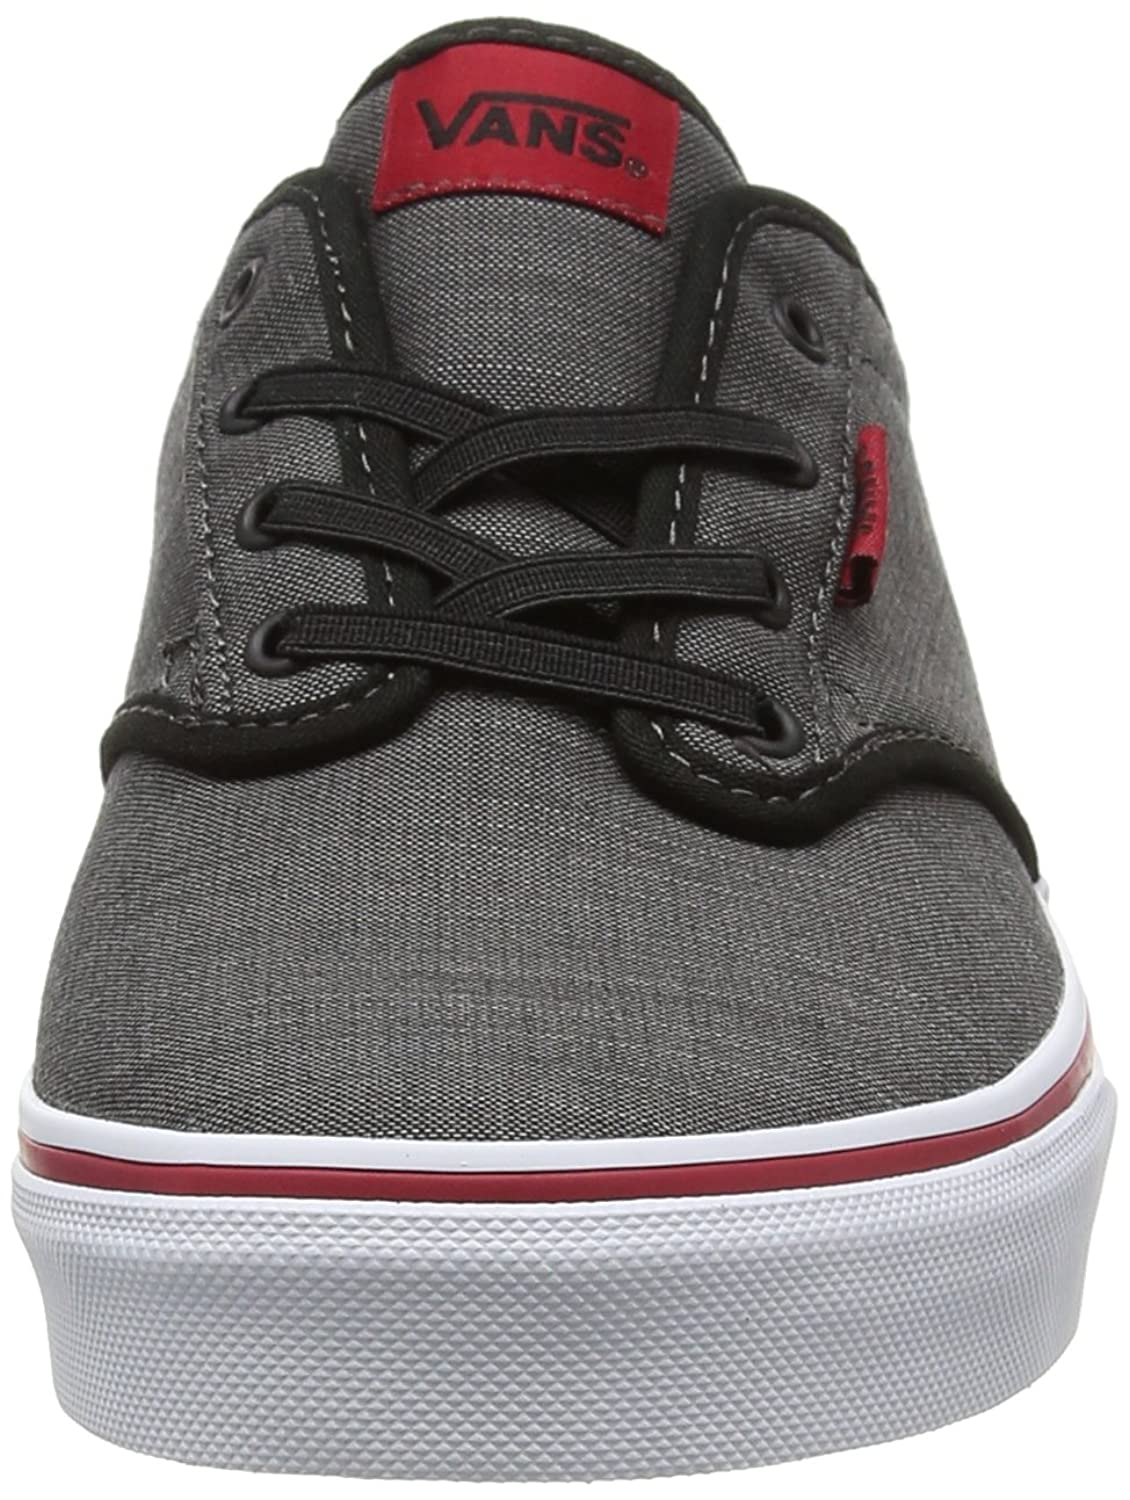 00dba97c66 Vans Unisex Kids  Atwood Slip-on Trainers  Amazon.co.uk  Shoes   Bags